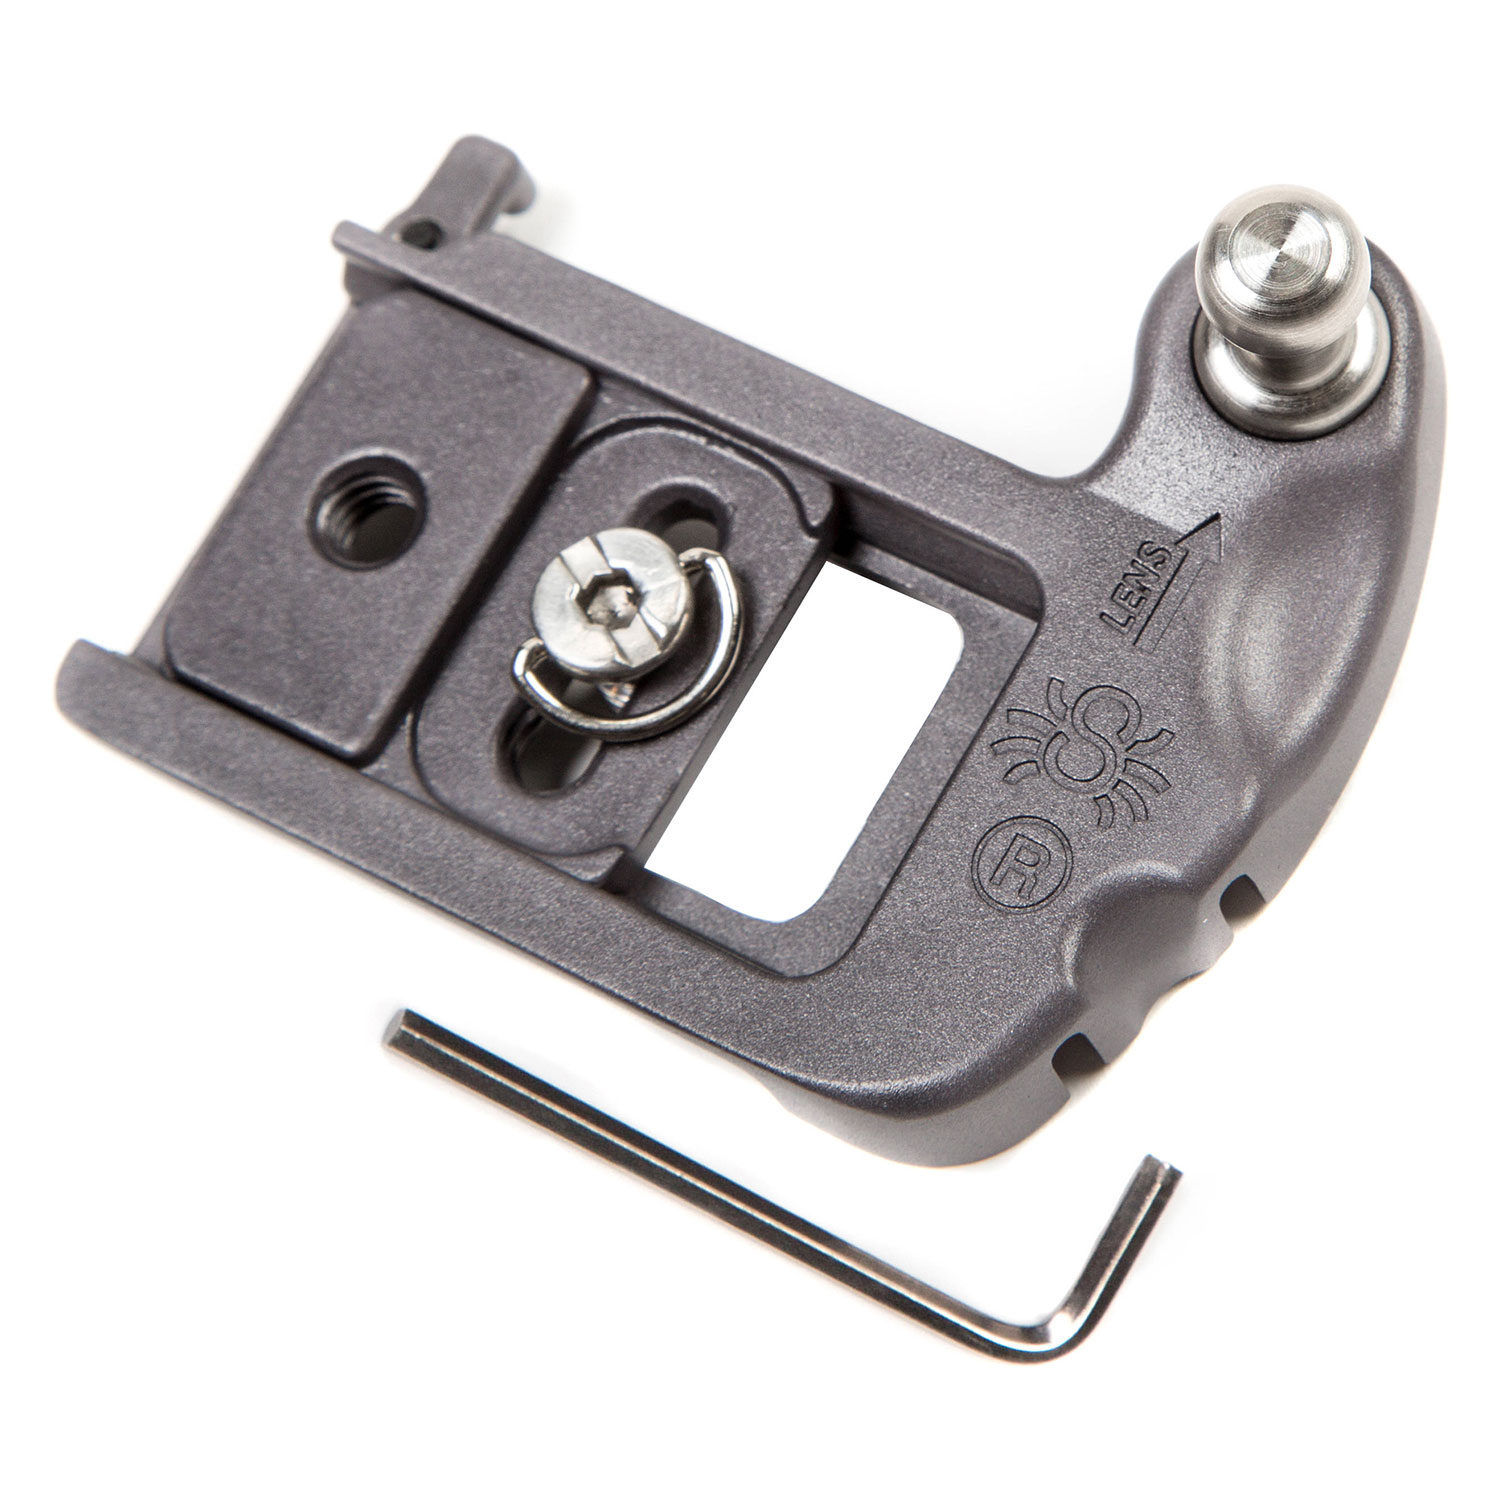 Foto van Spider Camera Holster Plate met Pin voor SpiderLight Holster